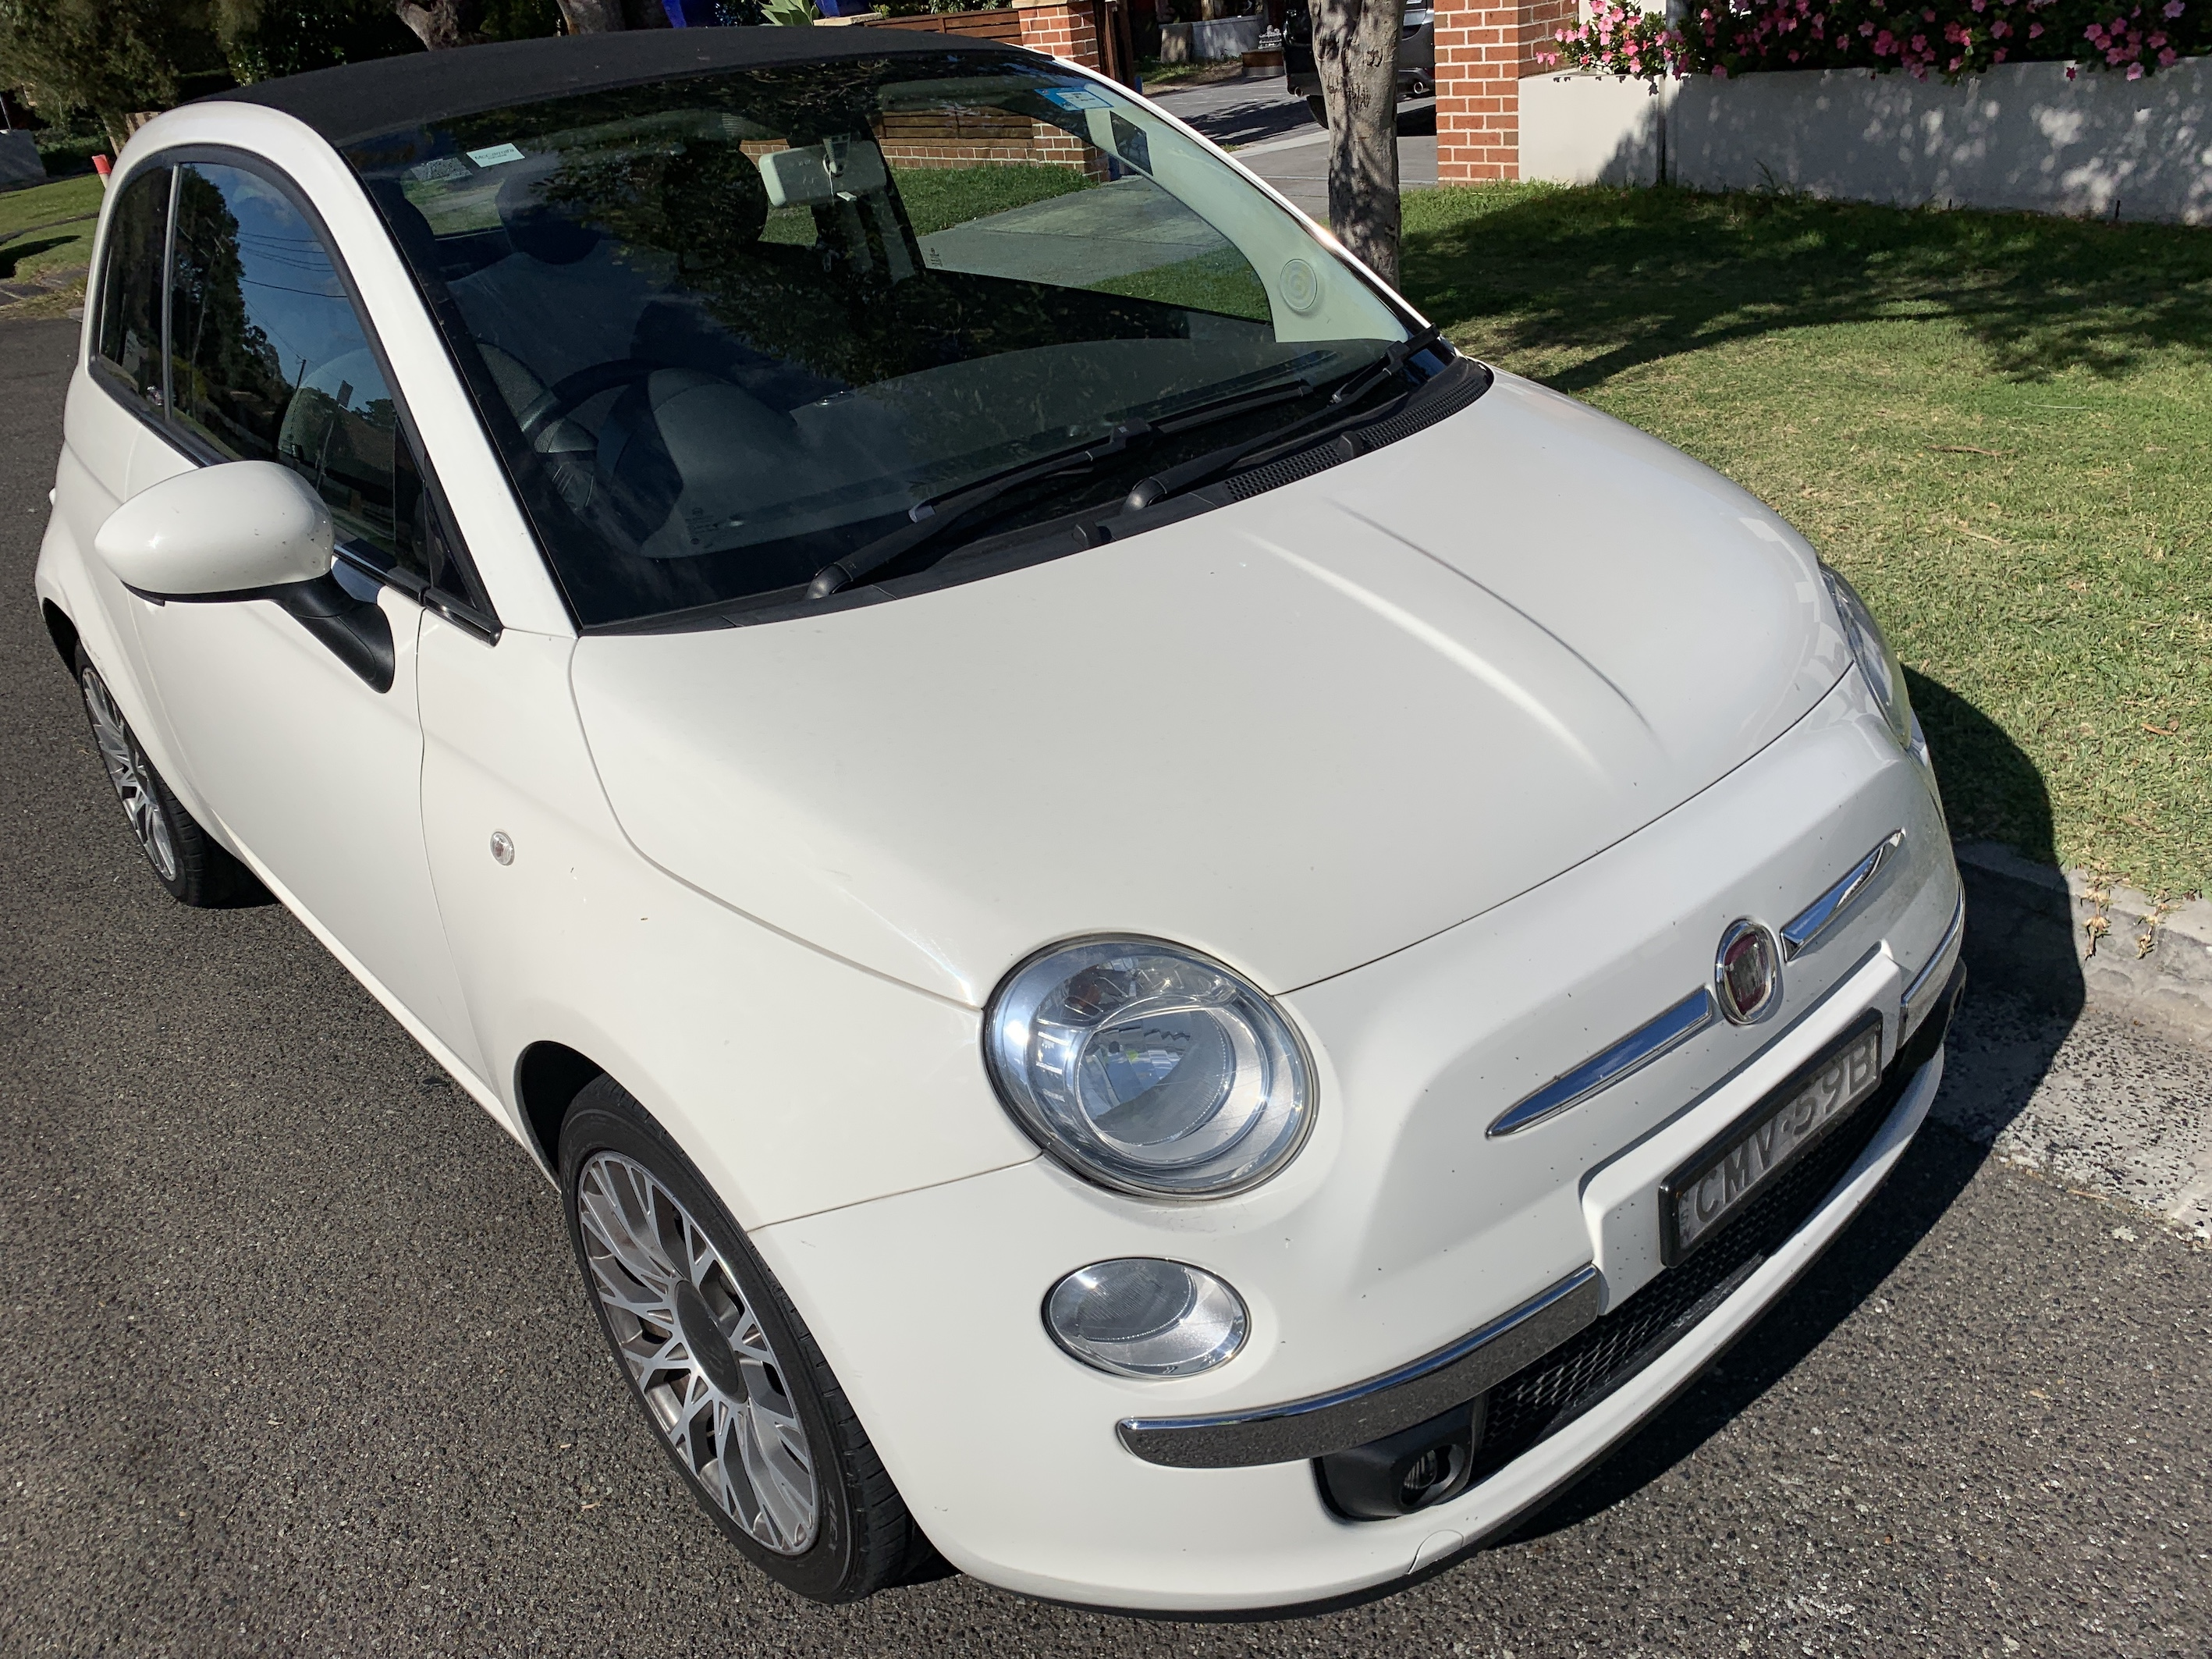 Picture of Nadine's 2013 Fiat 500